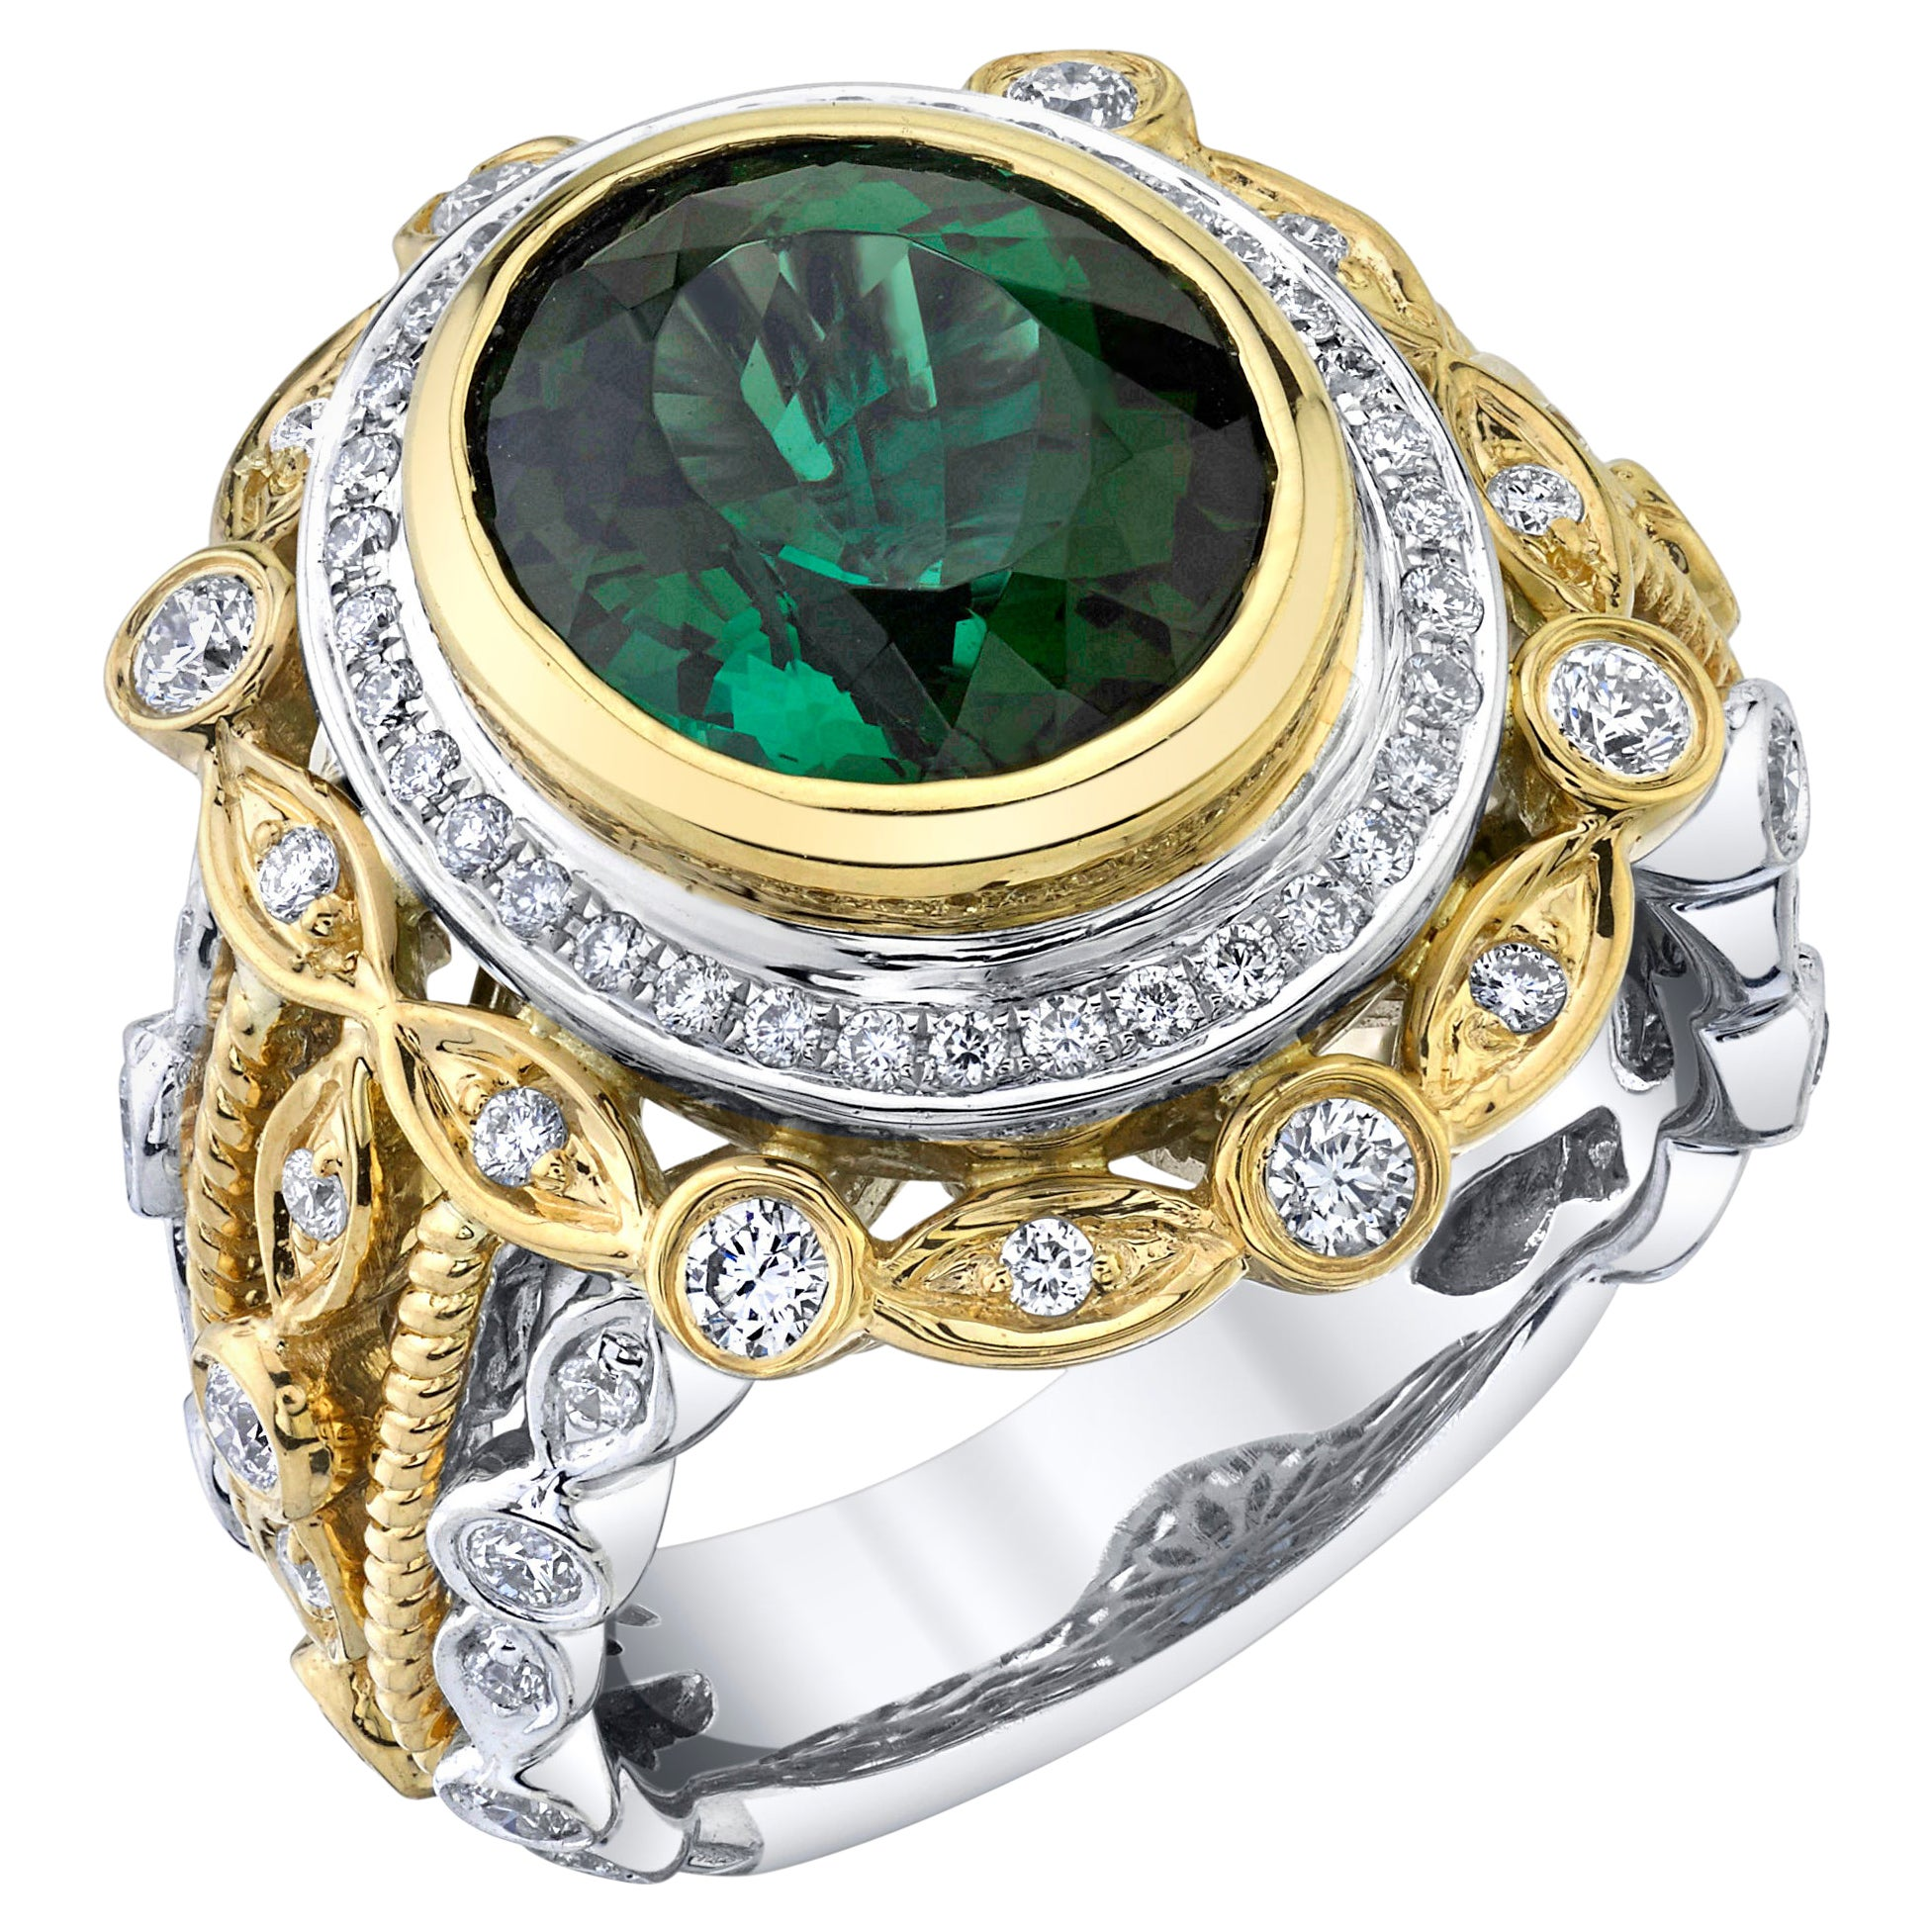 4.45 Carat Oval Green Tourmaline, Diamond White and Yellow Gold Cocktail Ring